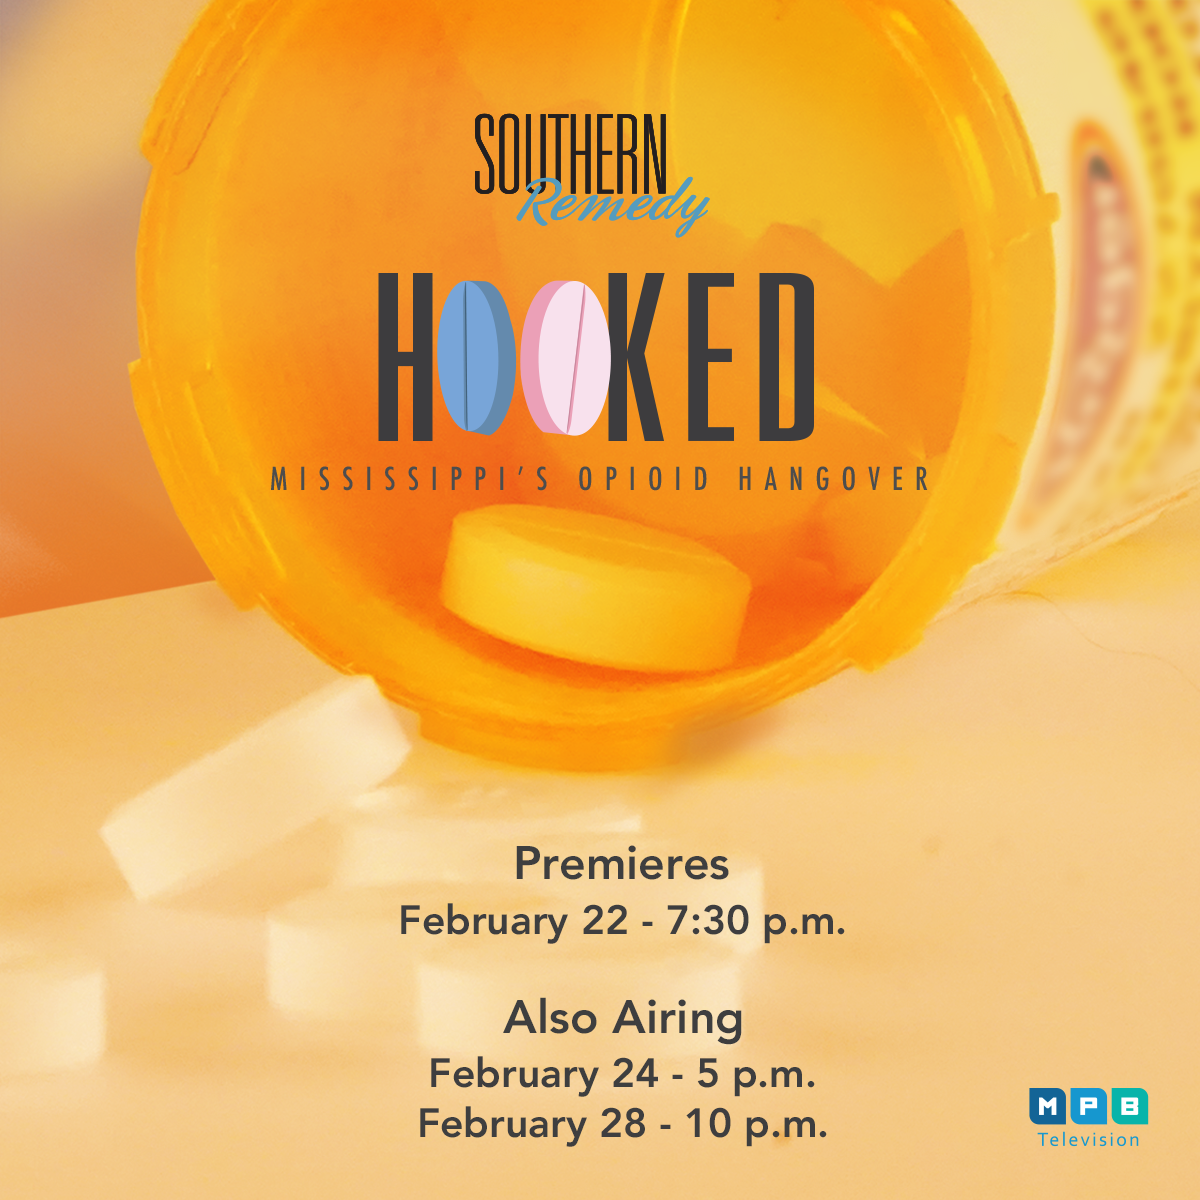 Watch the special Southern Remedy Series, Hooked: Mississippi's Opioid Hangover